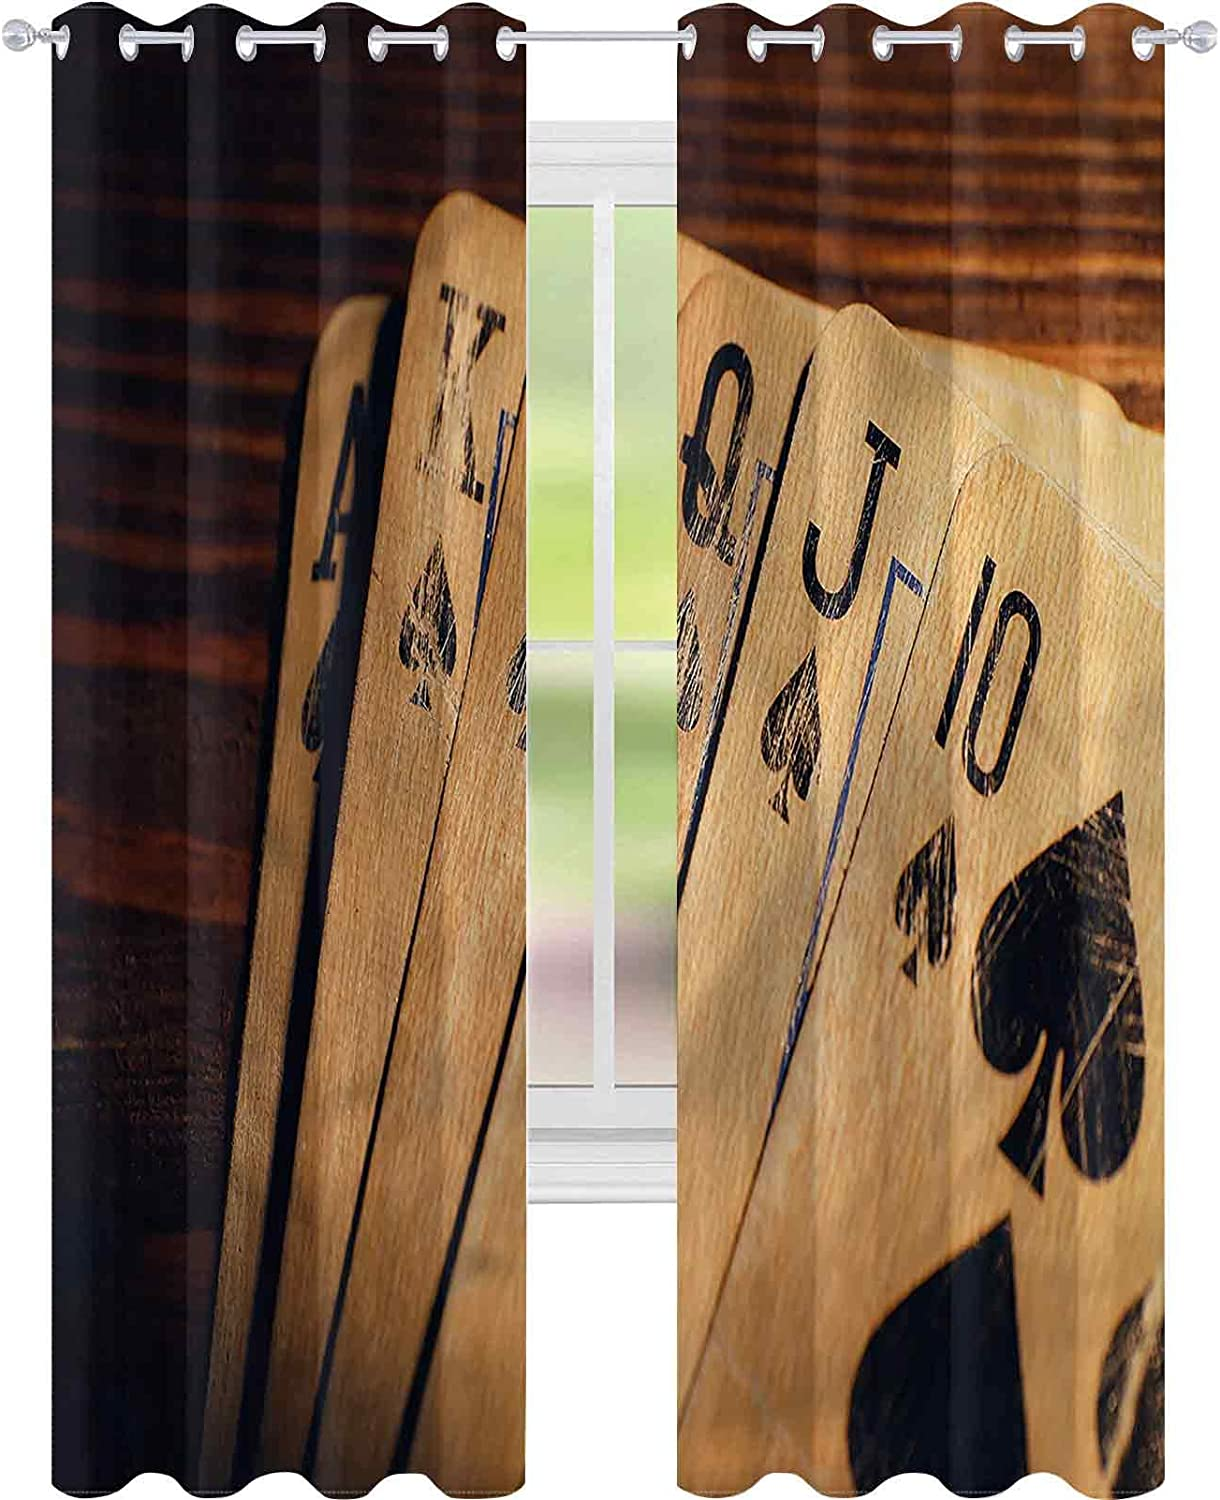 Window Curtain Drape Poker Tournament Cards W52 Elegant Table L72 on a Weekly update x